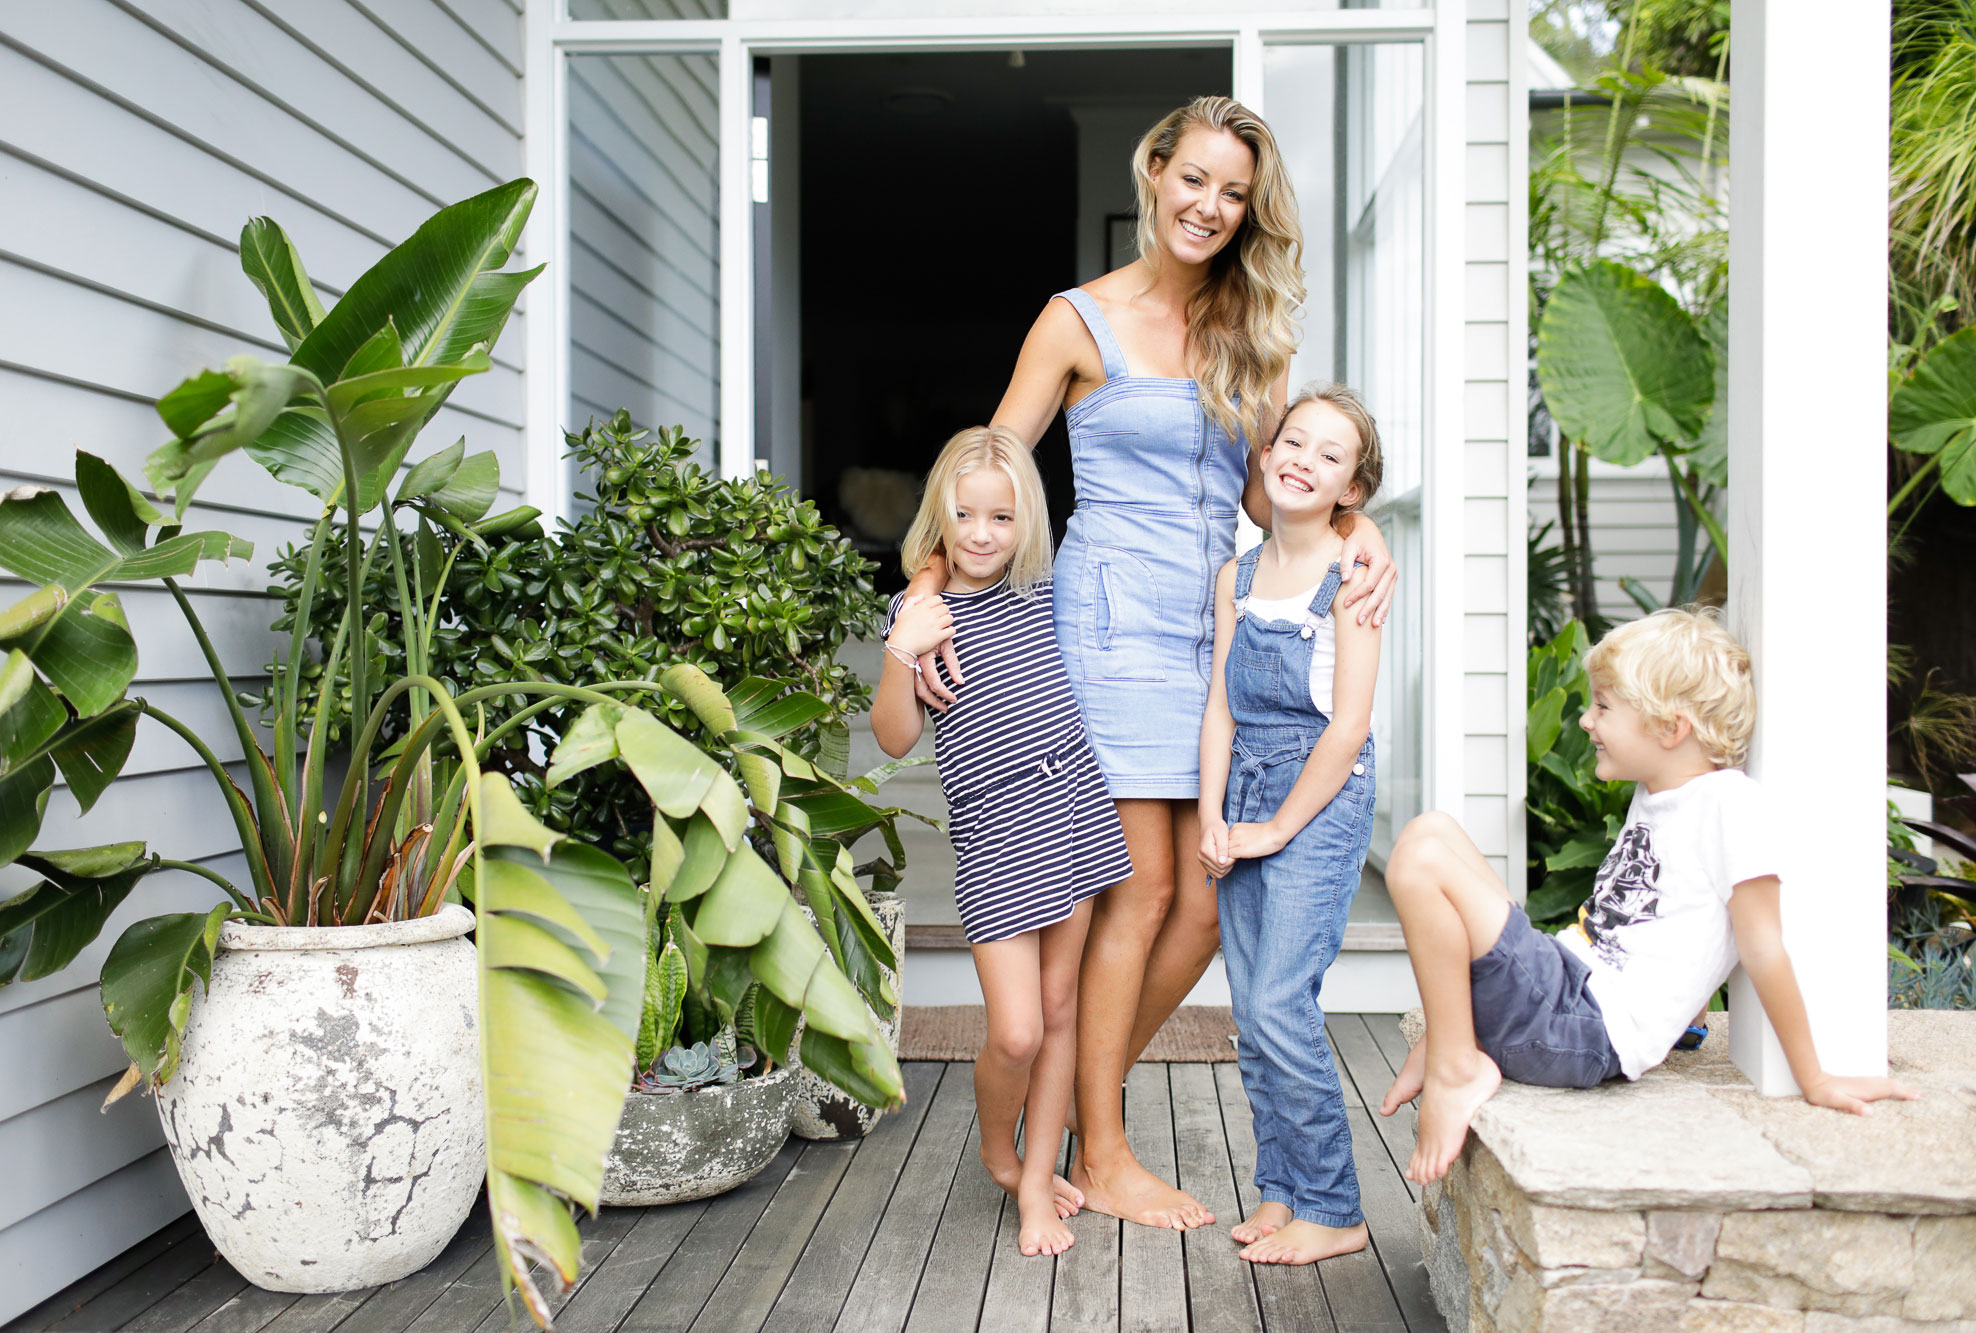 My island home: Alanna Smit on juggling three kids with a successful interior business